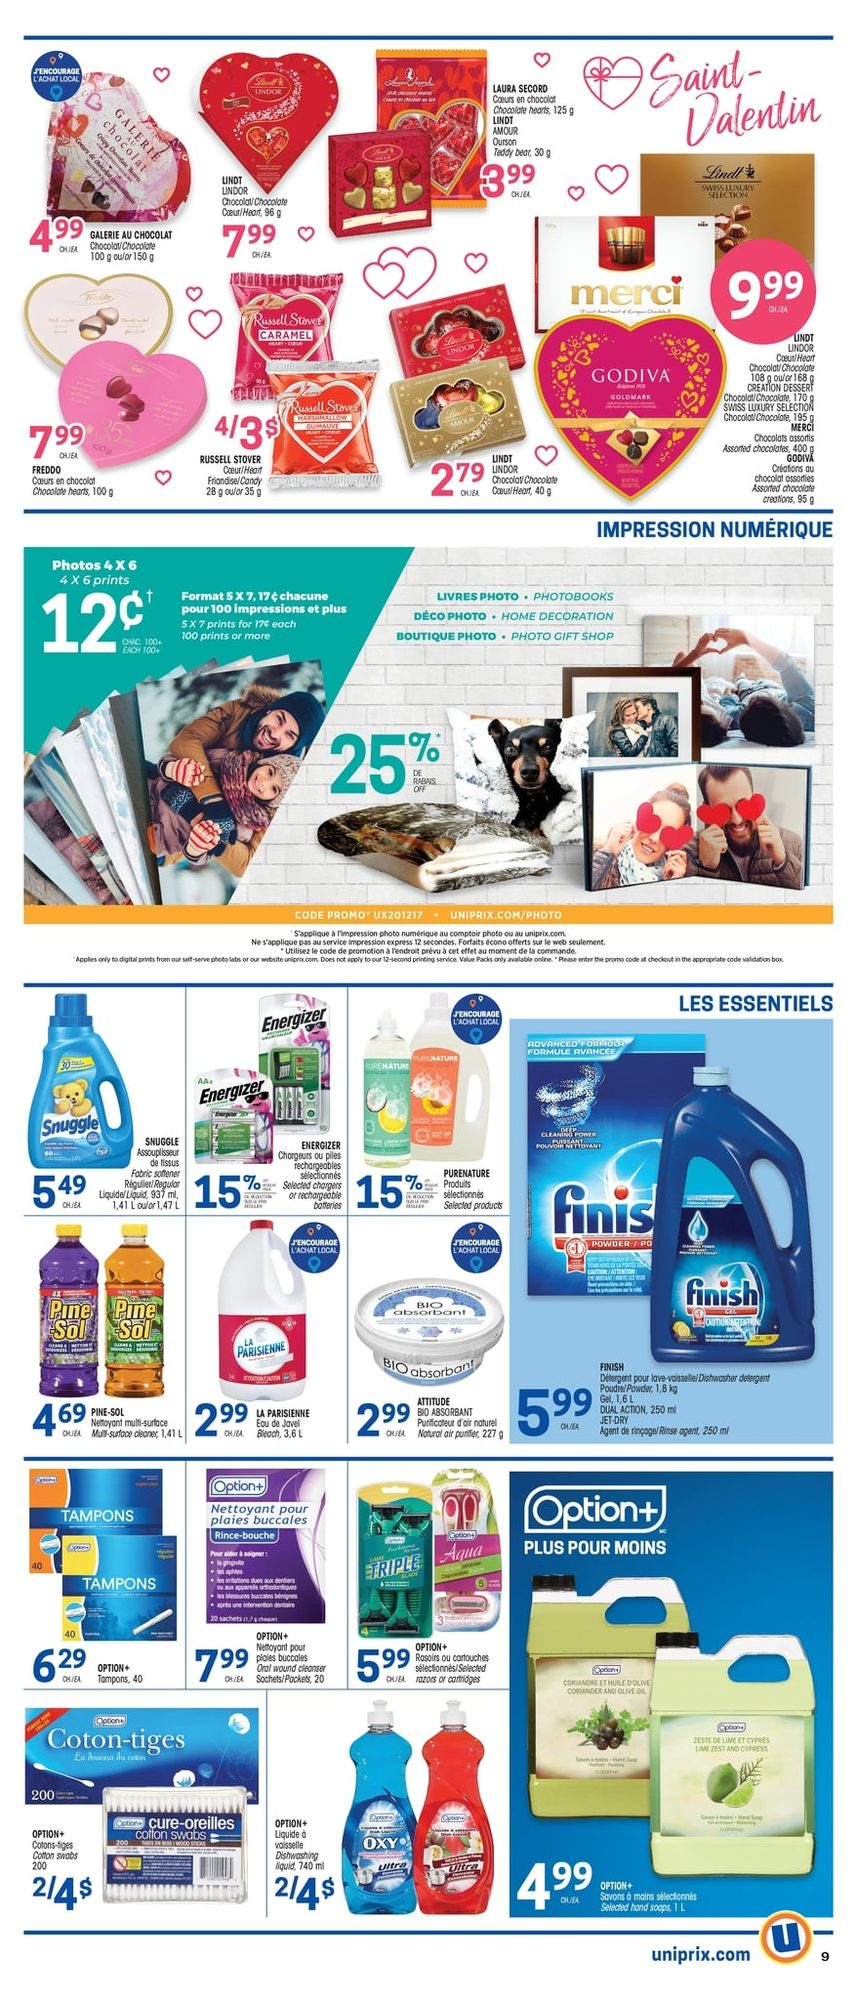 Uniprix - Weekly Flyer Specials - Page 11